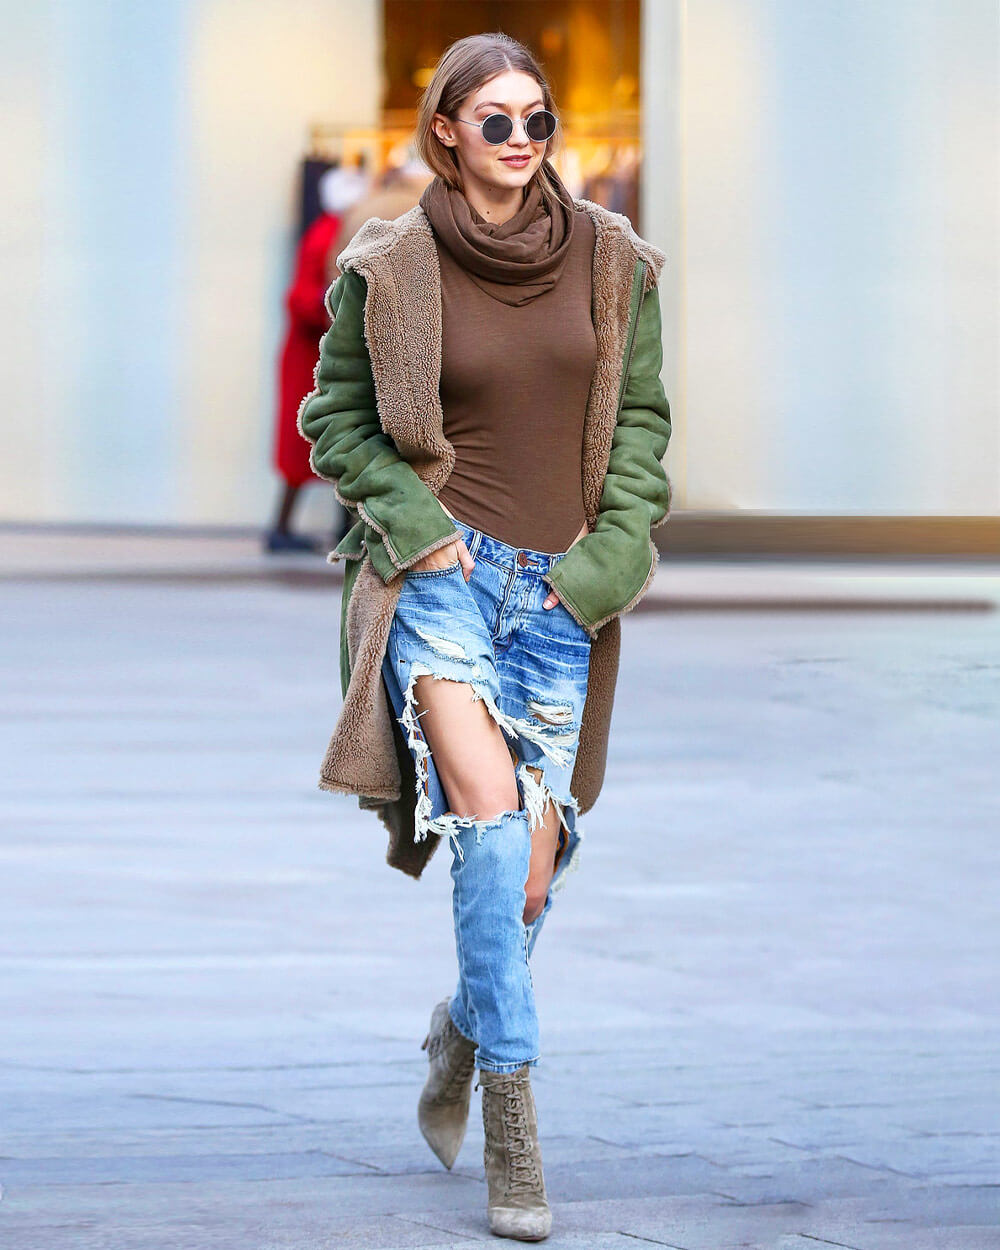 Gigi Hadid wearing One Teaspoon jeans